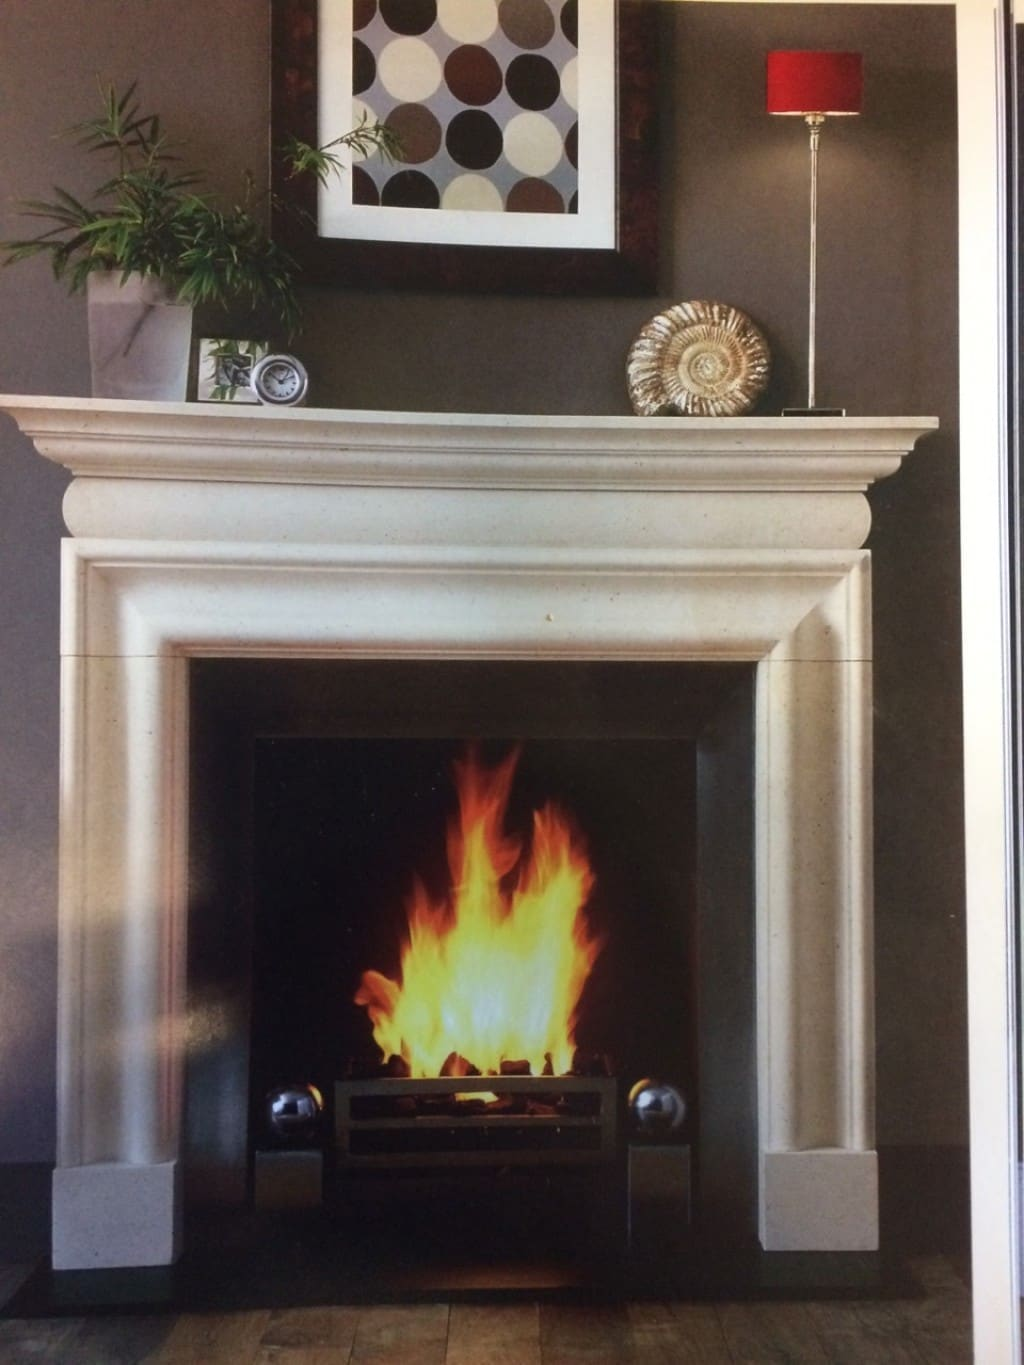 Blog - A tile fireplace with a DPD system or a traditional tile fireplace?